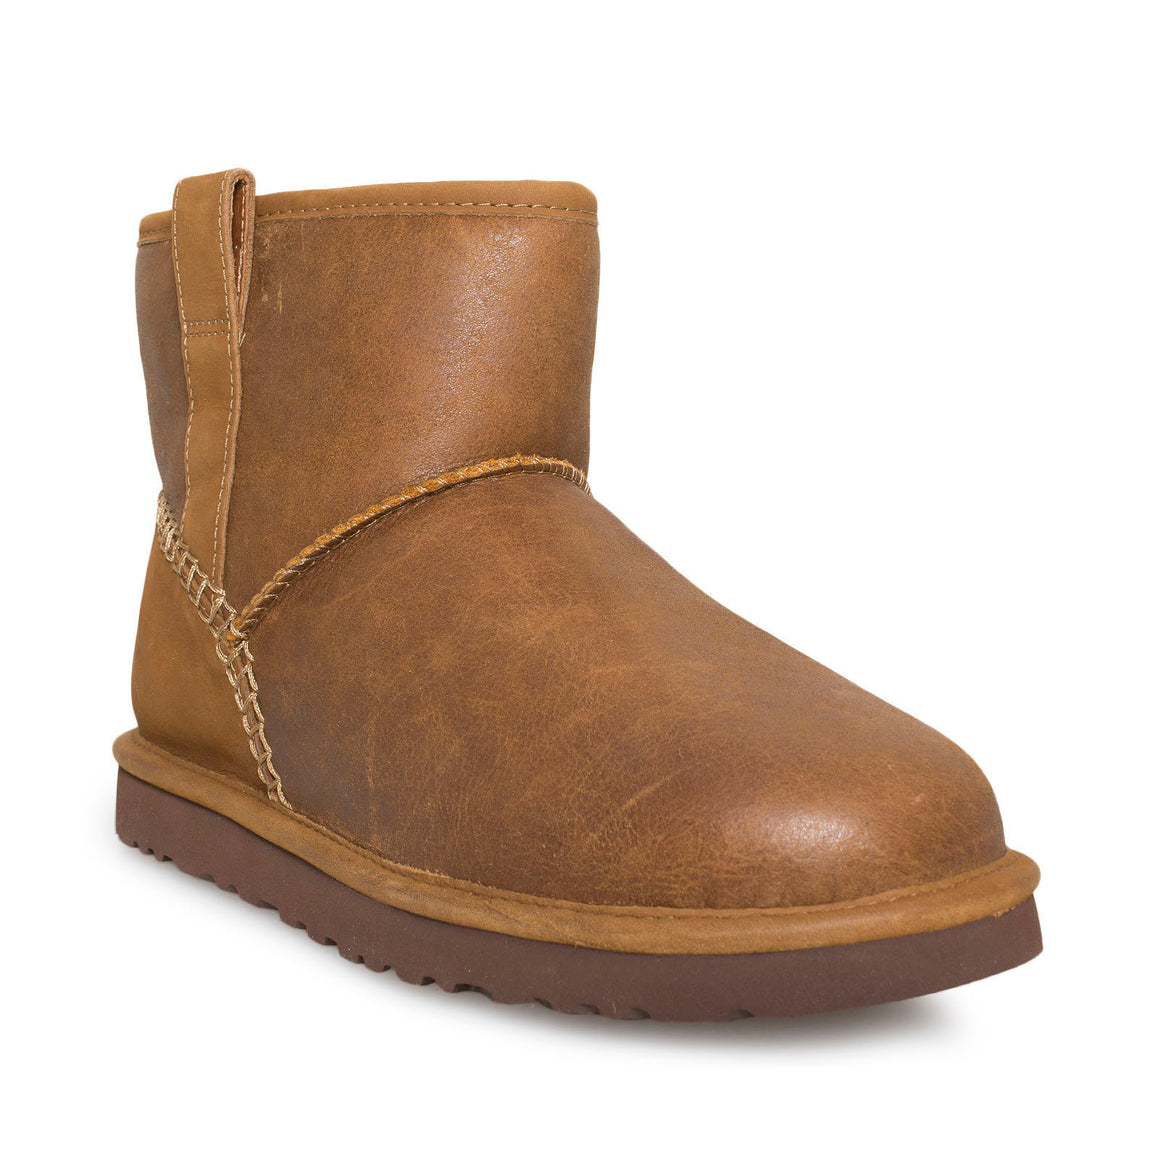 UGG Classic Mini Stitch Chestnut Boots - Men's